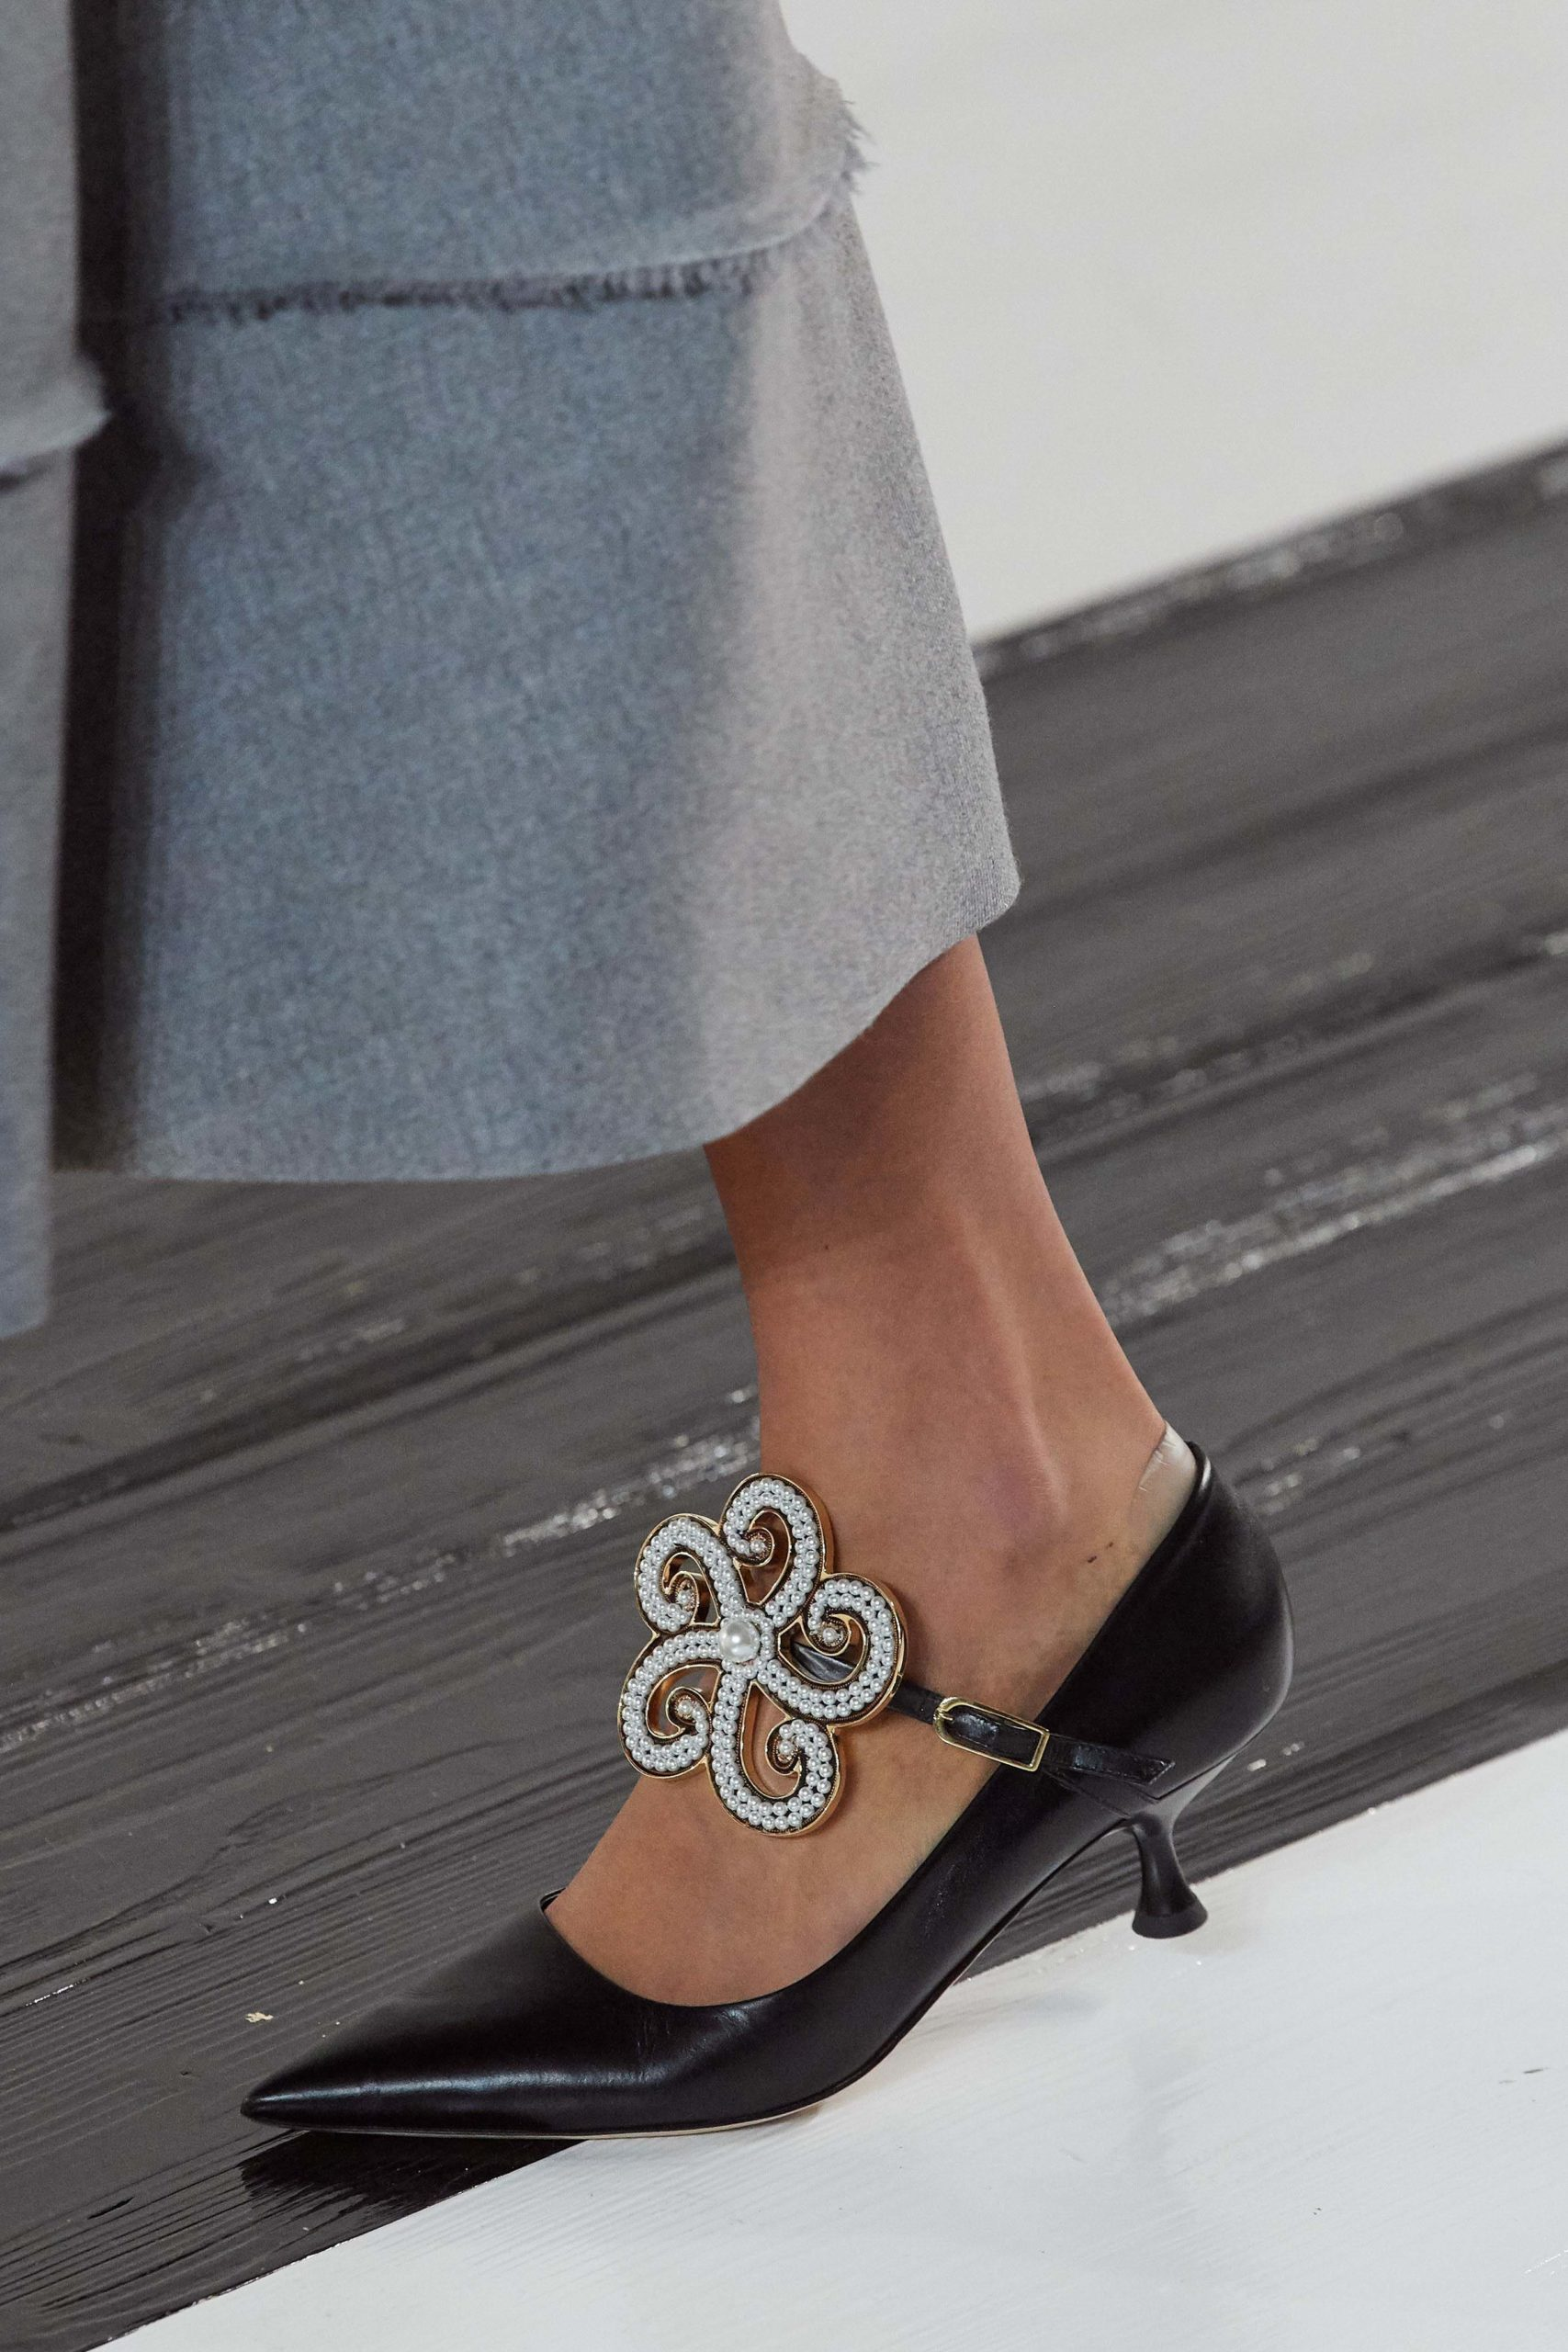 Loewe Fall 2020 trends runway coverage Ready To Wear Vogue shoes best of 2020 shoes